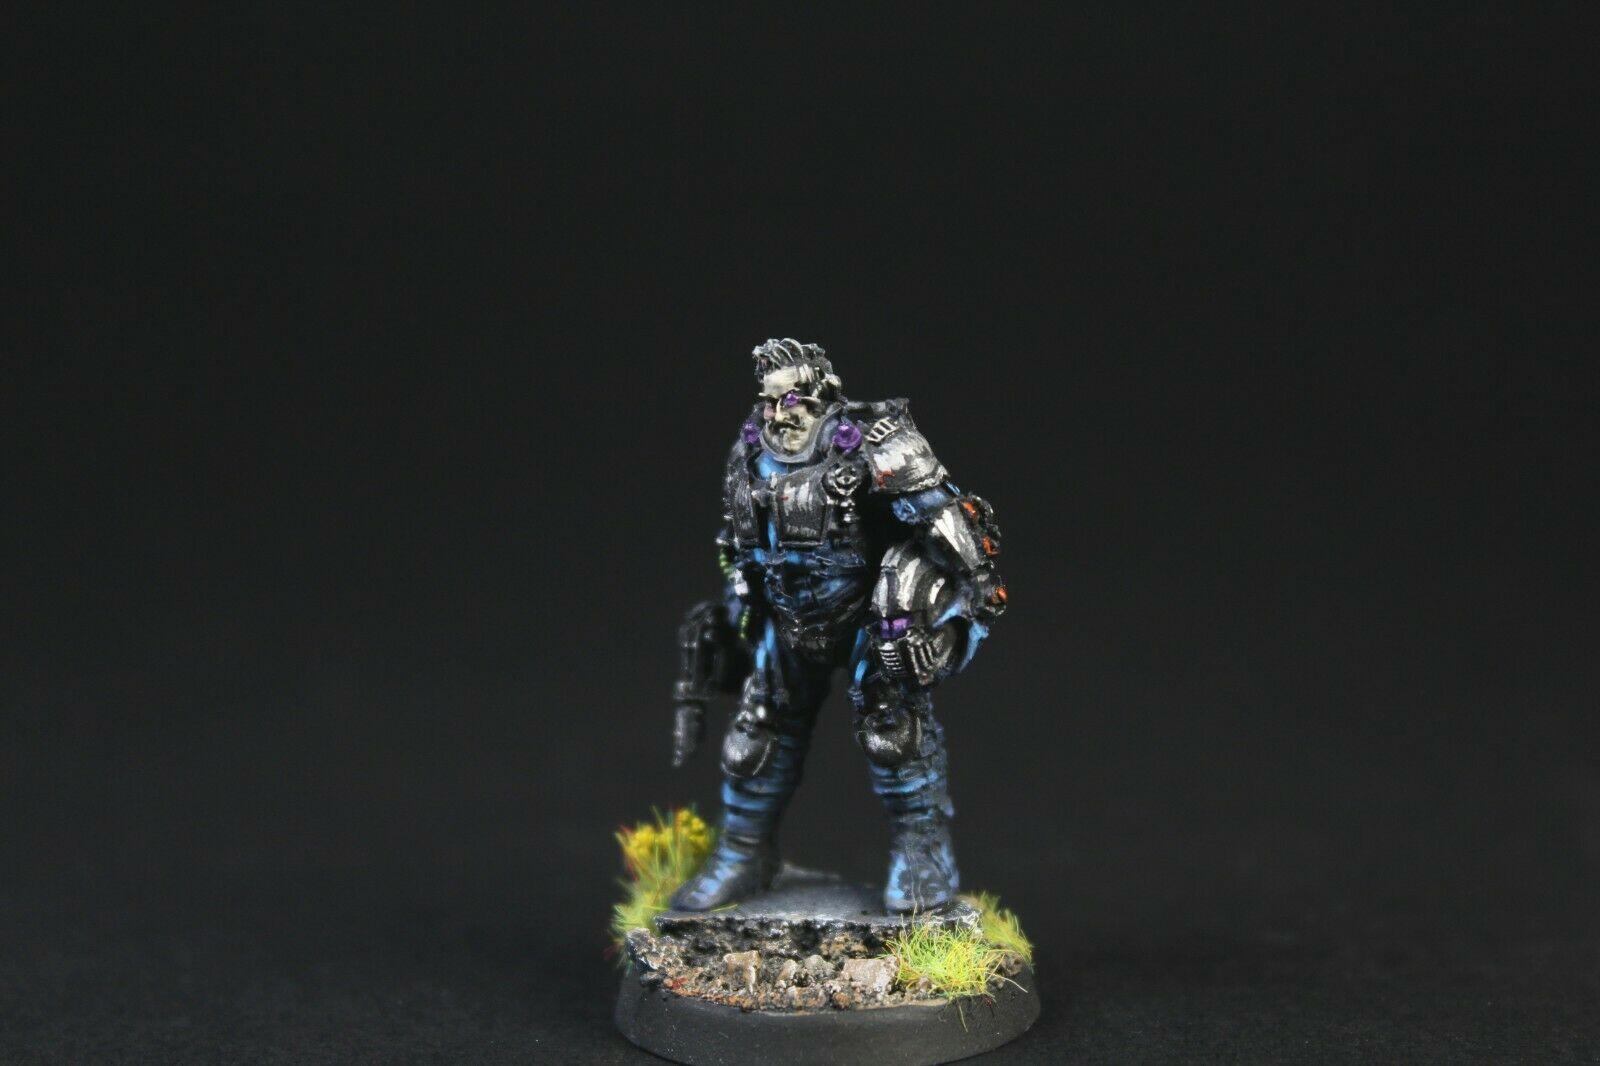 Warhamer 40000 Forge World Knight Scion Standing. Nicely painted